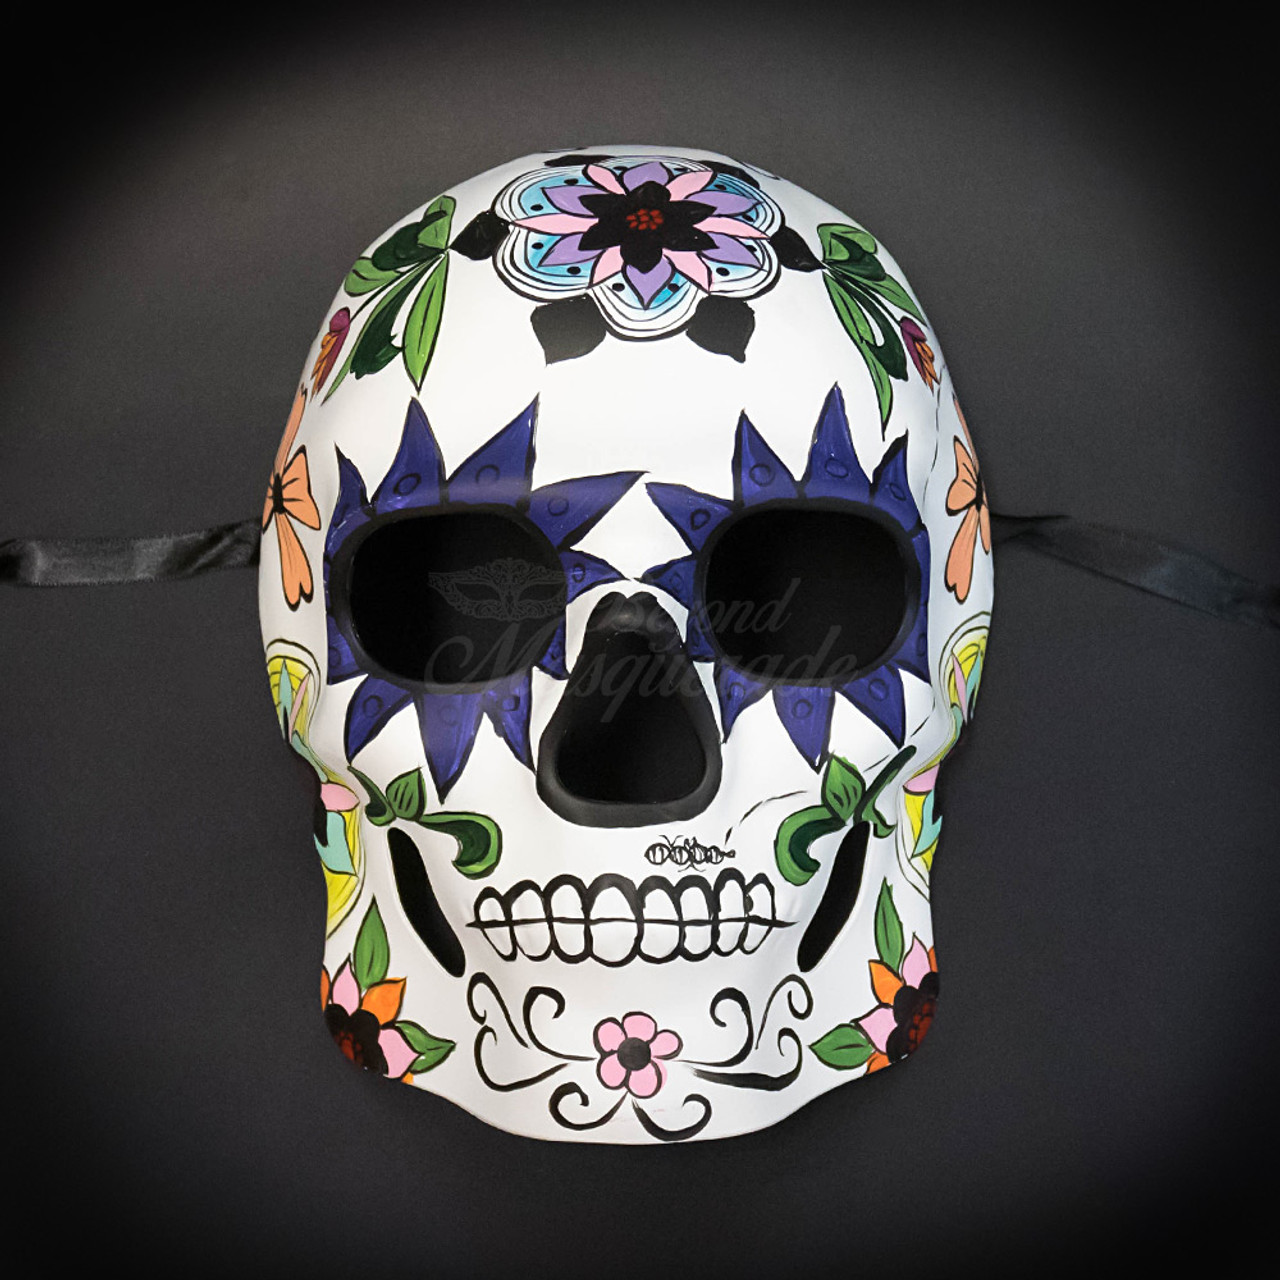 Day of the Dead Masks - Dia de los Muertos Masquerade Mask M38242 - BeyondMasquerade.com